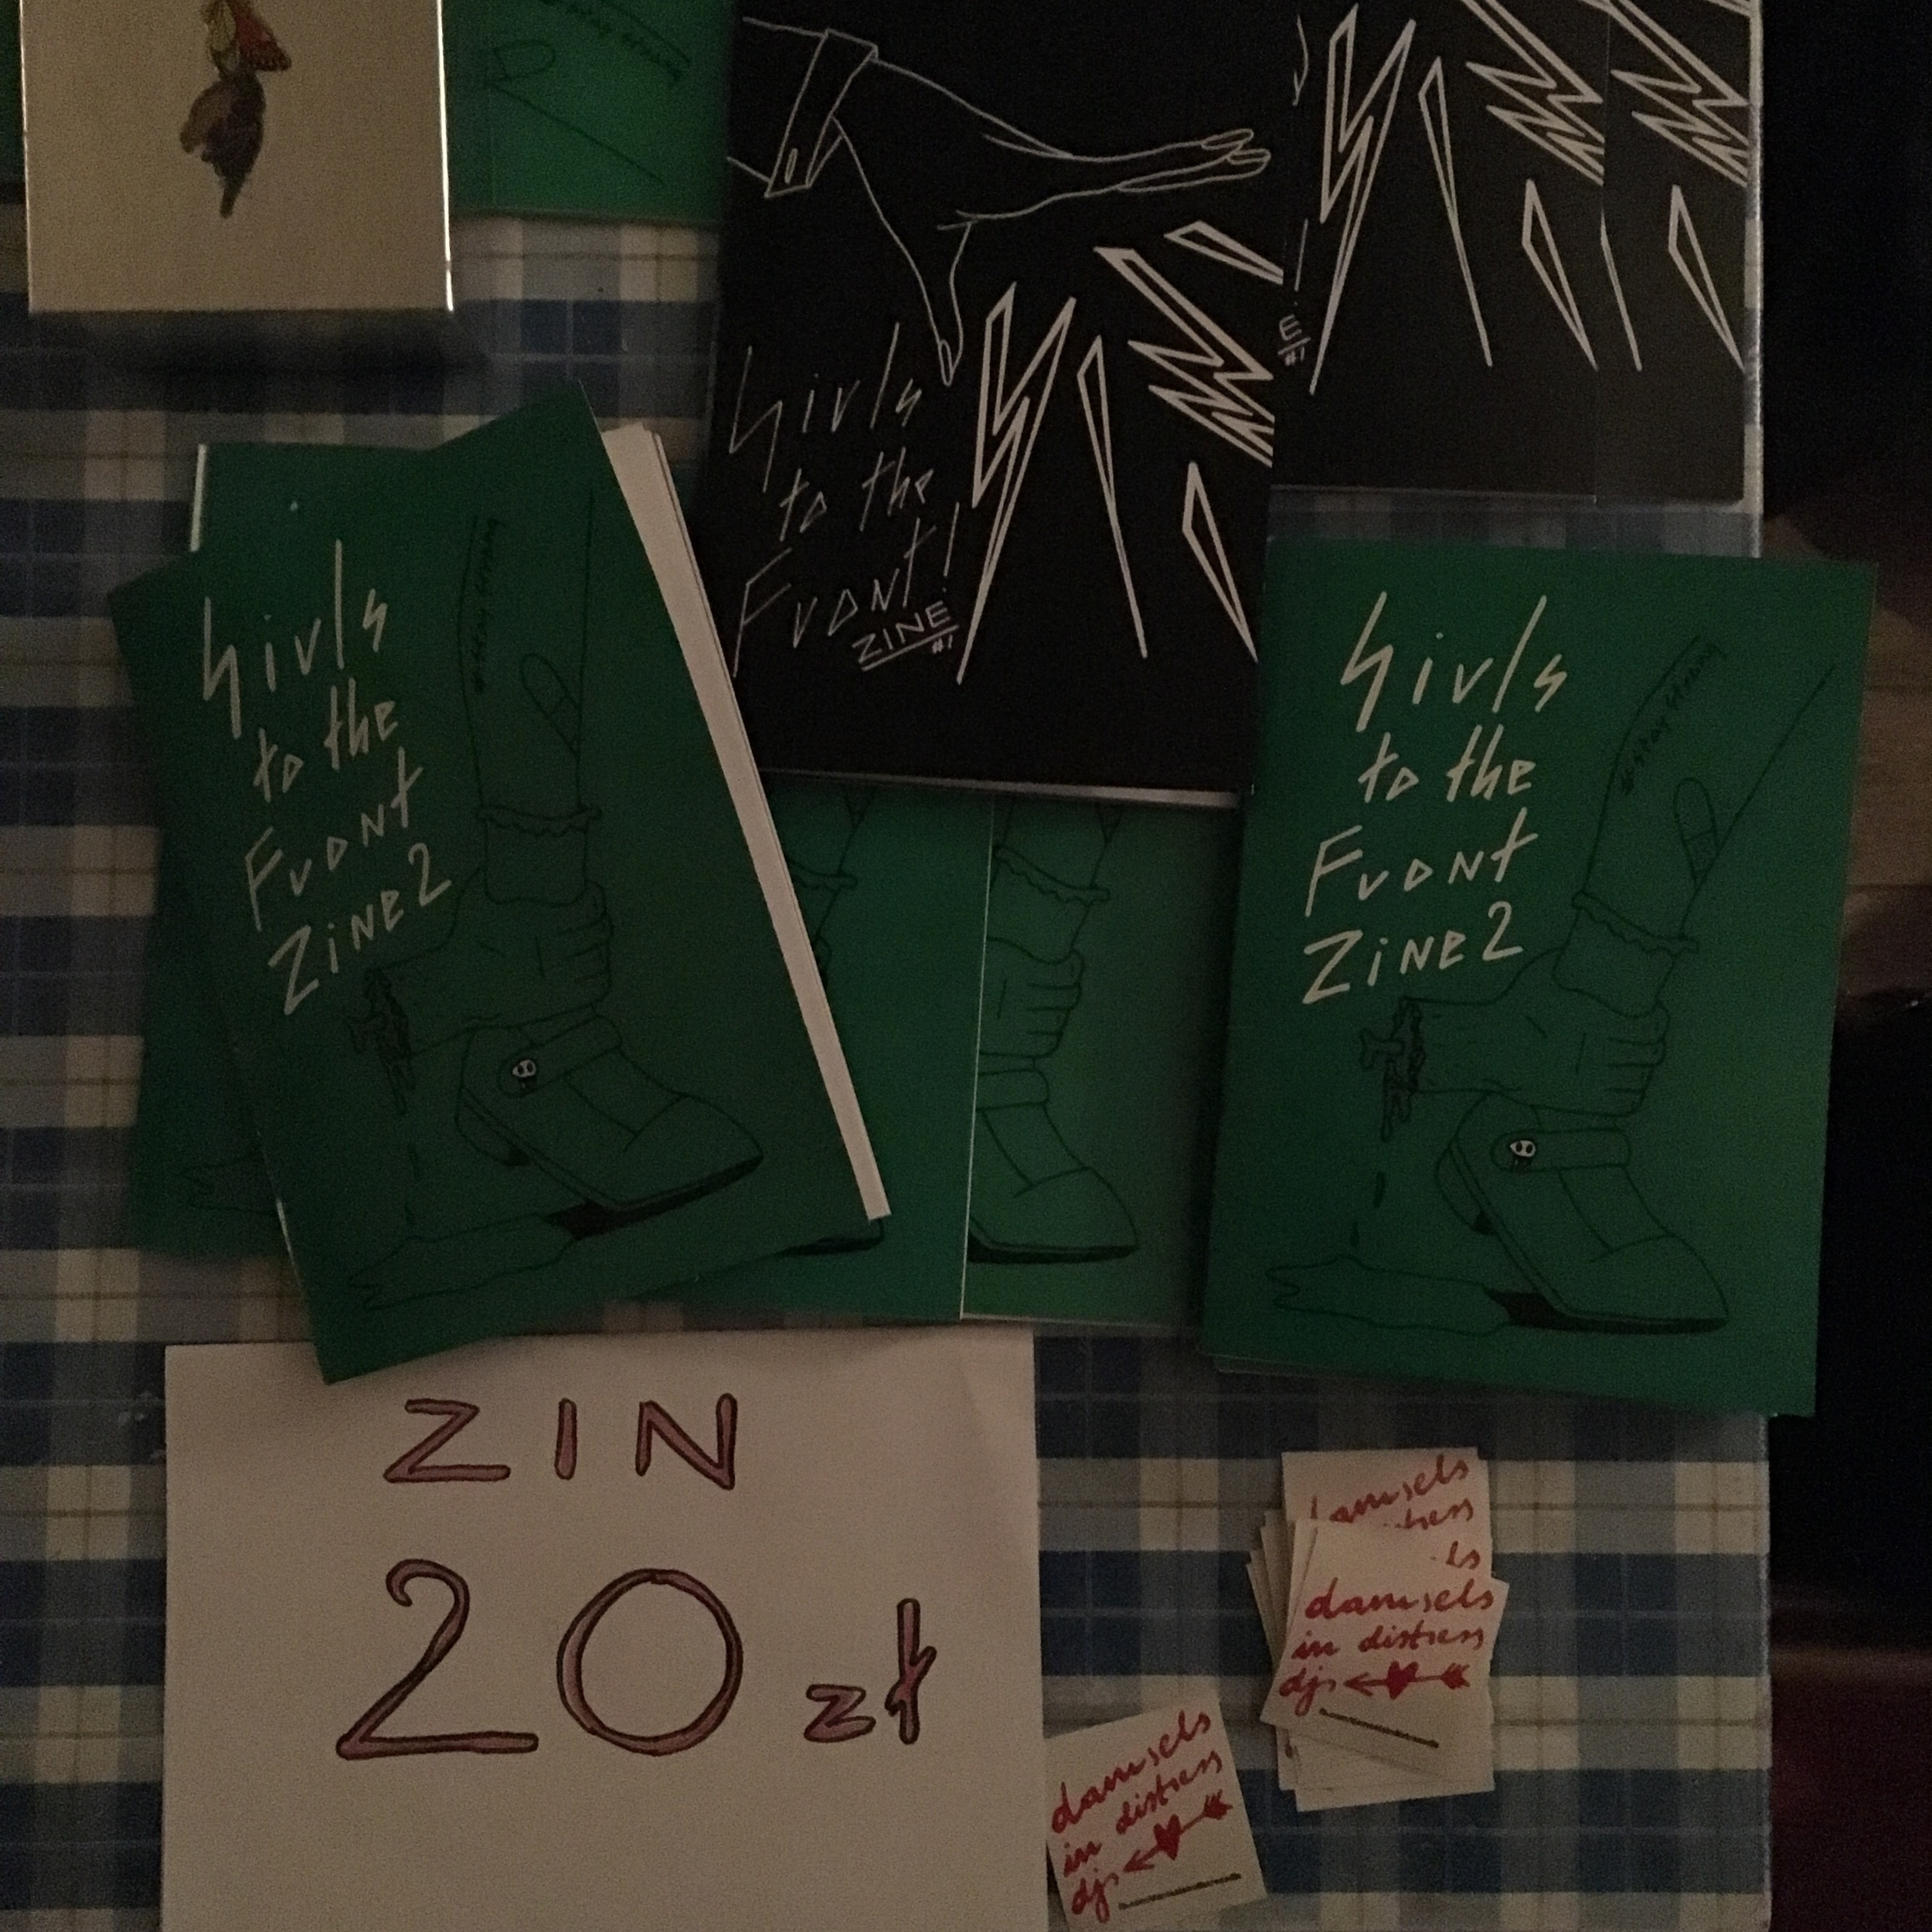 The Girls to the Front Zine is a feminist publication featuring written and visual art by Polish women. The editor of the zine is a girl named Ola who helps throw a party by the same name. Her parties feature live music by female musicians, who she says are underrepresented in Polish society.